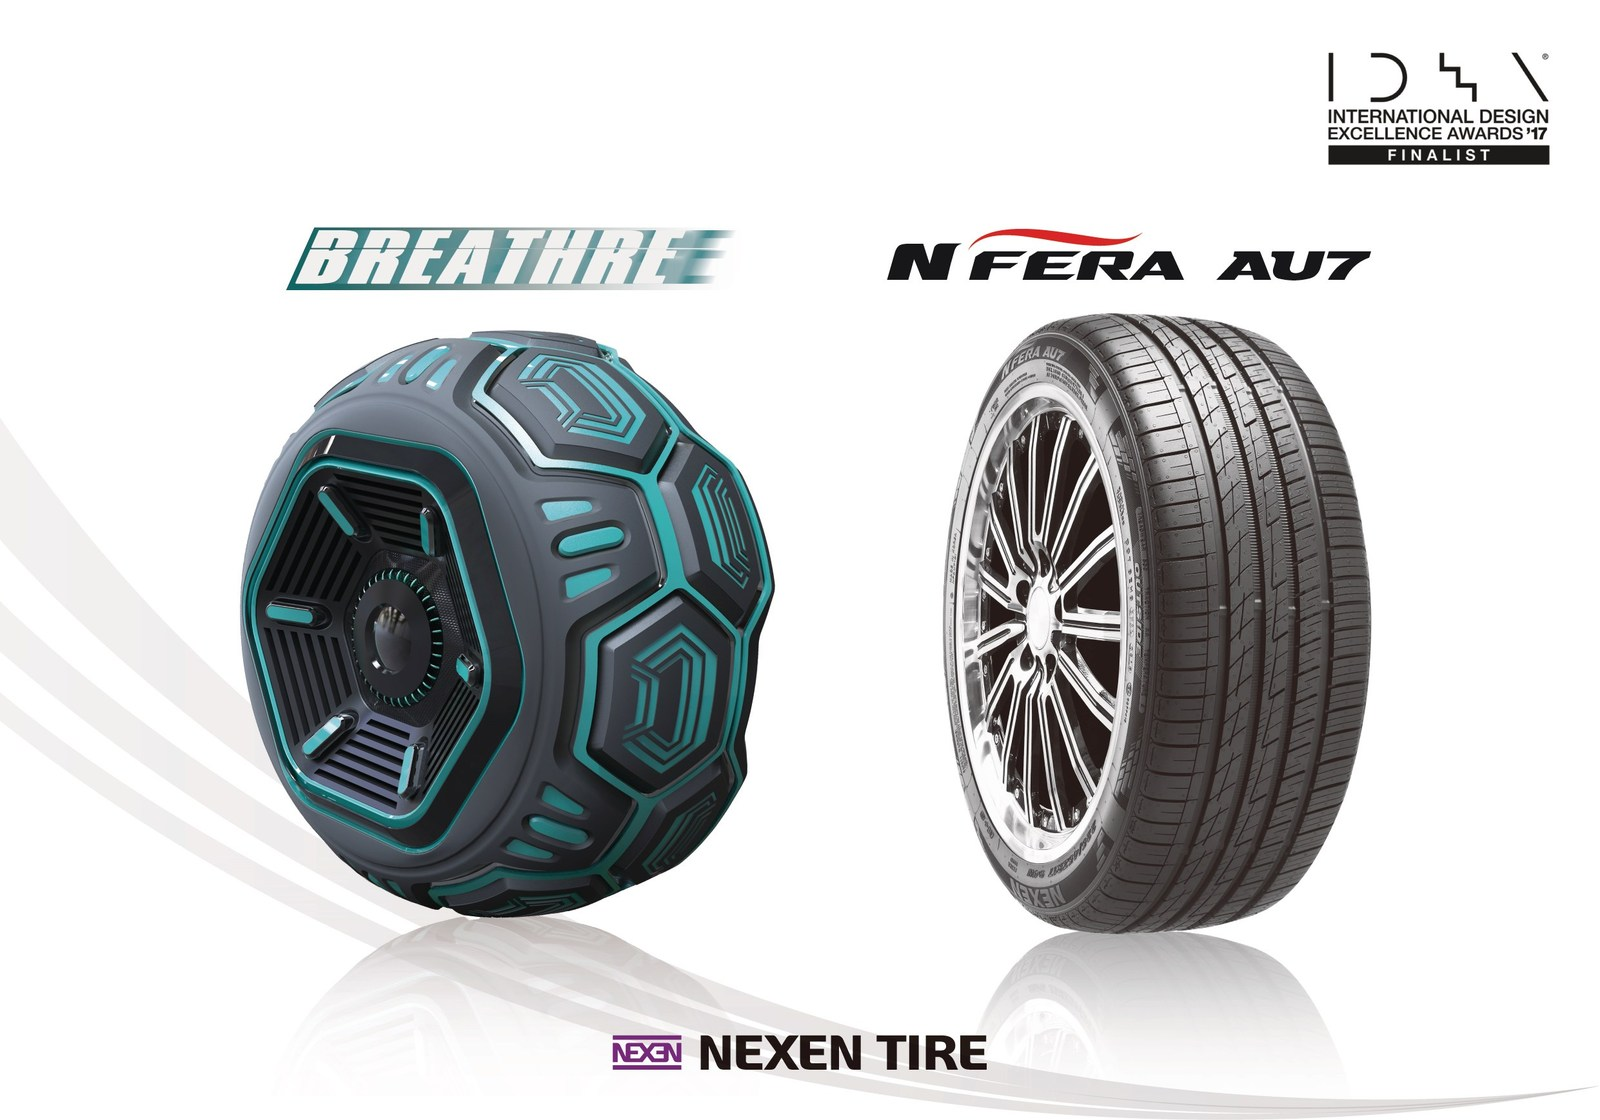 Nexen Tire Wins Two IDEA Design Awards (PRNewsfoto/Nexen Tire)